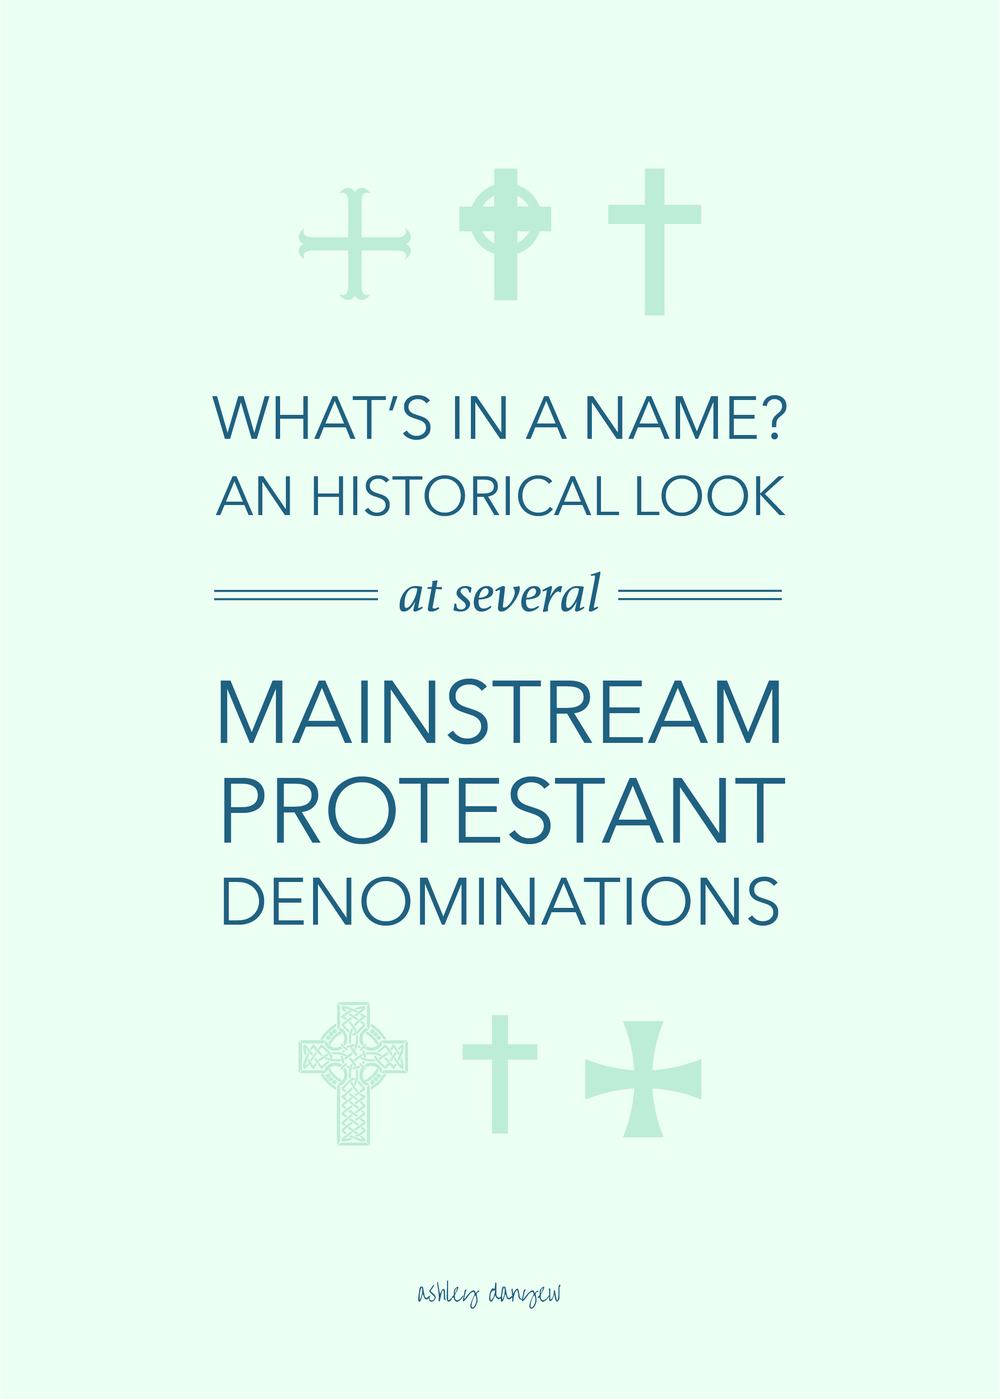 An Historical Look at Several Mainstream Protestant Denominations-55.png